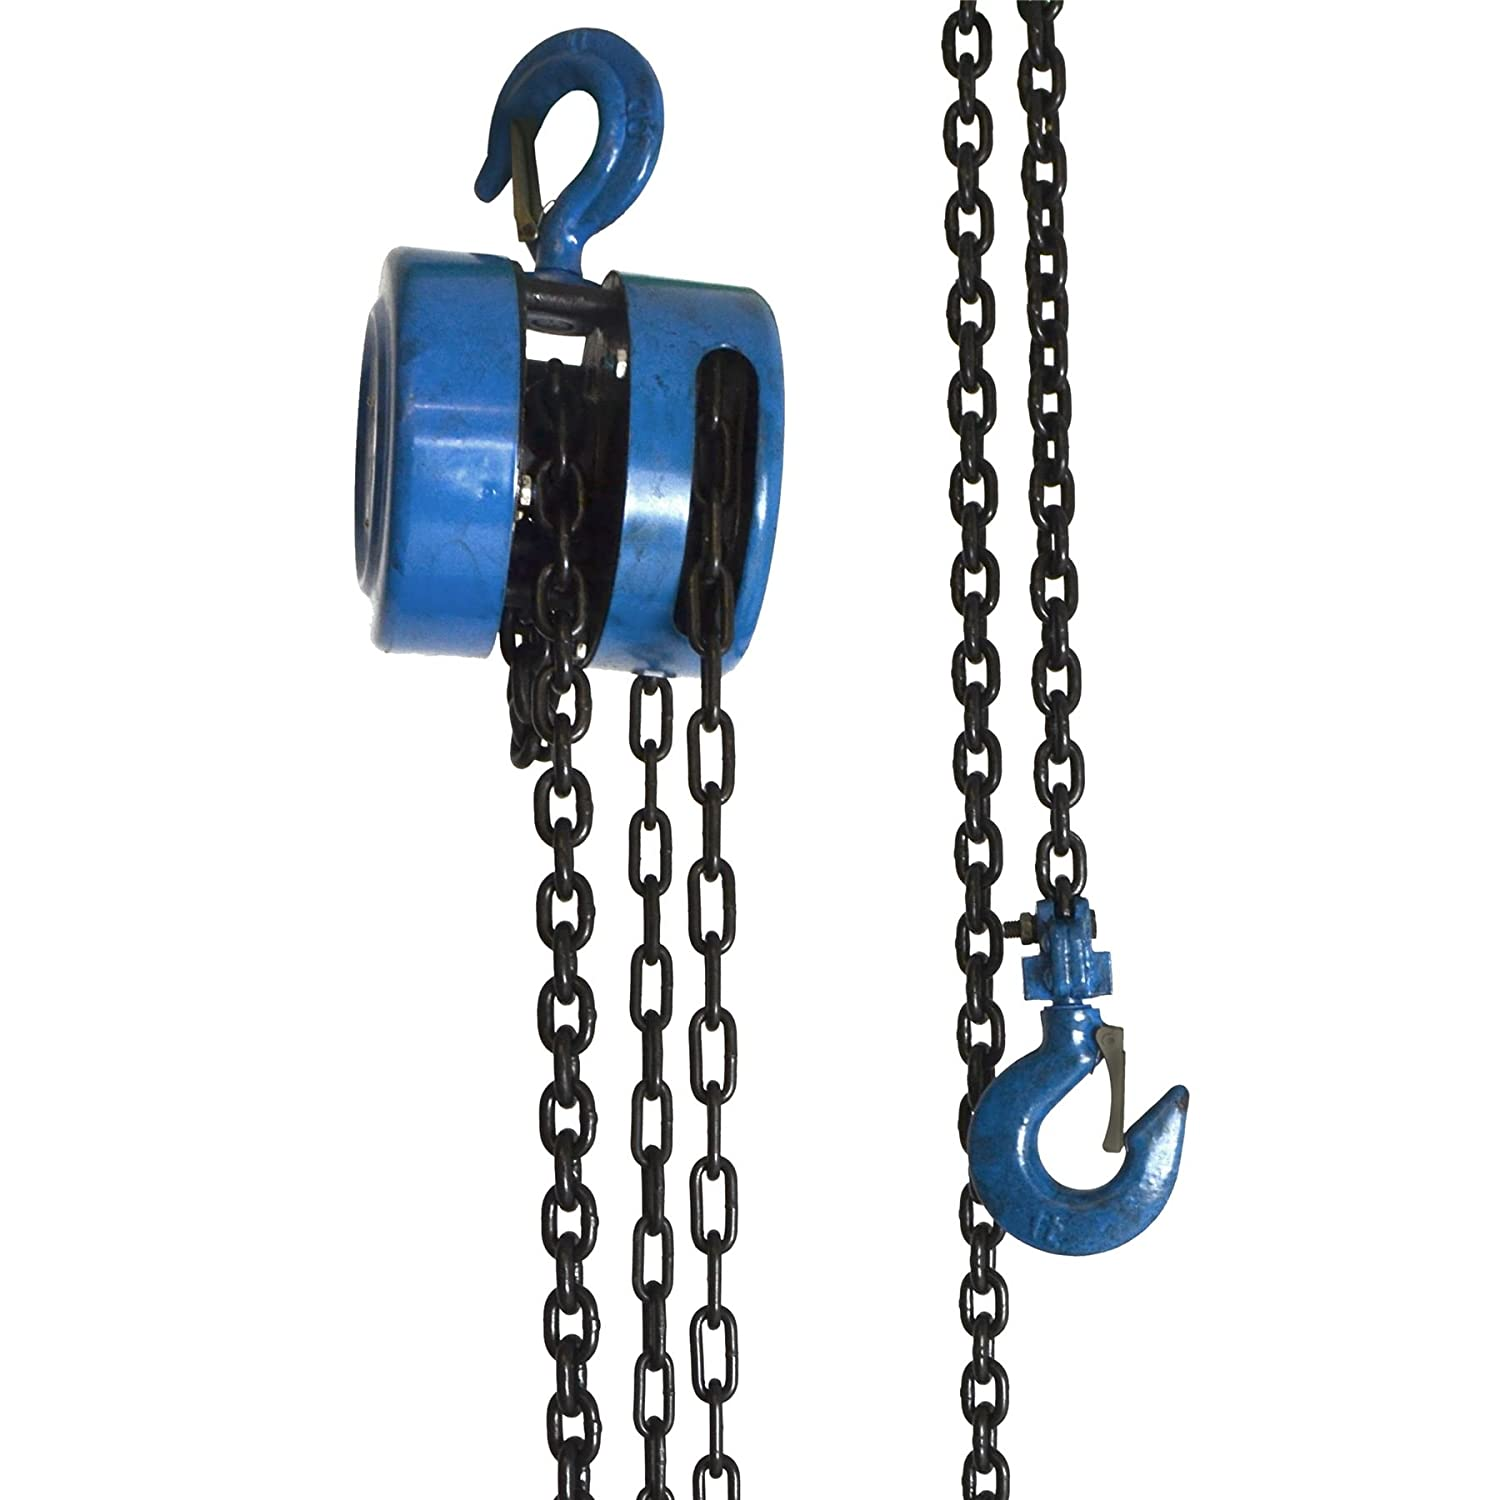 1 Ton Chain Block / Pulley Lifting Block / Engine Lift / Crank Chain Hoist TE298 AB Tools